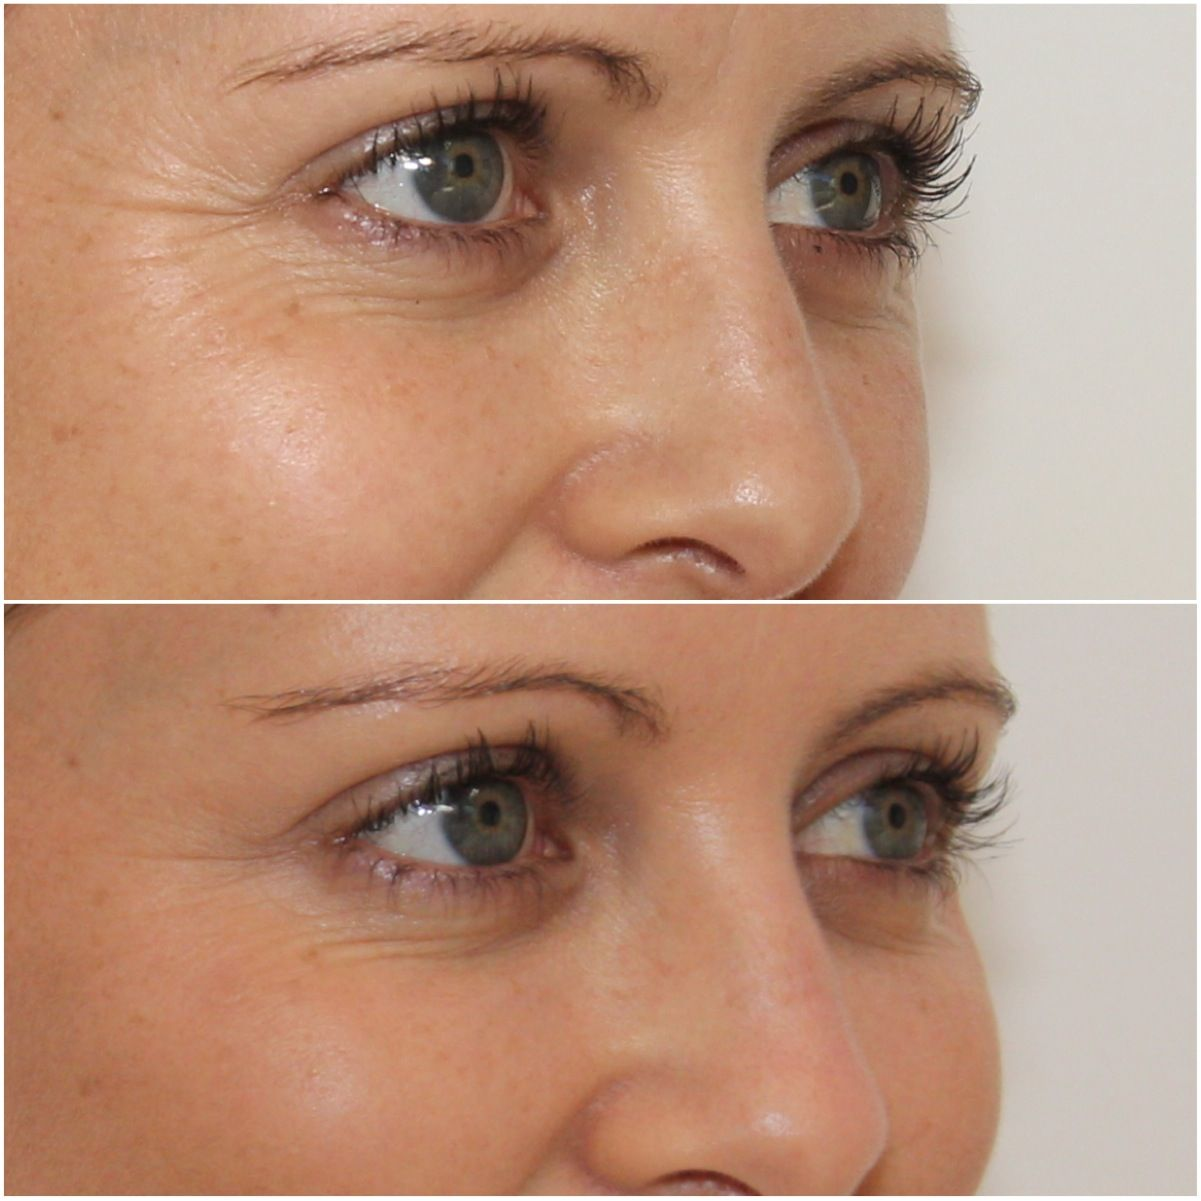 NONSURGICAL FACELIFT In nonsurgical face lift for instant glow on